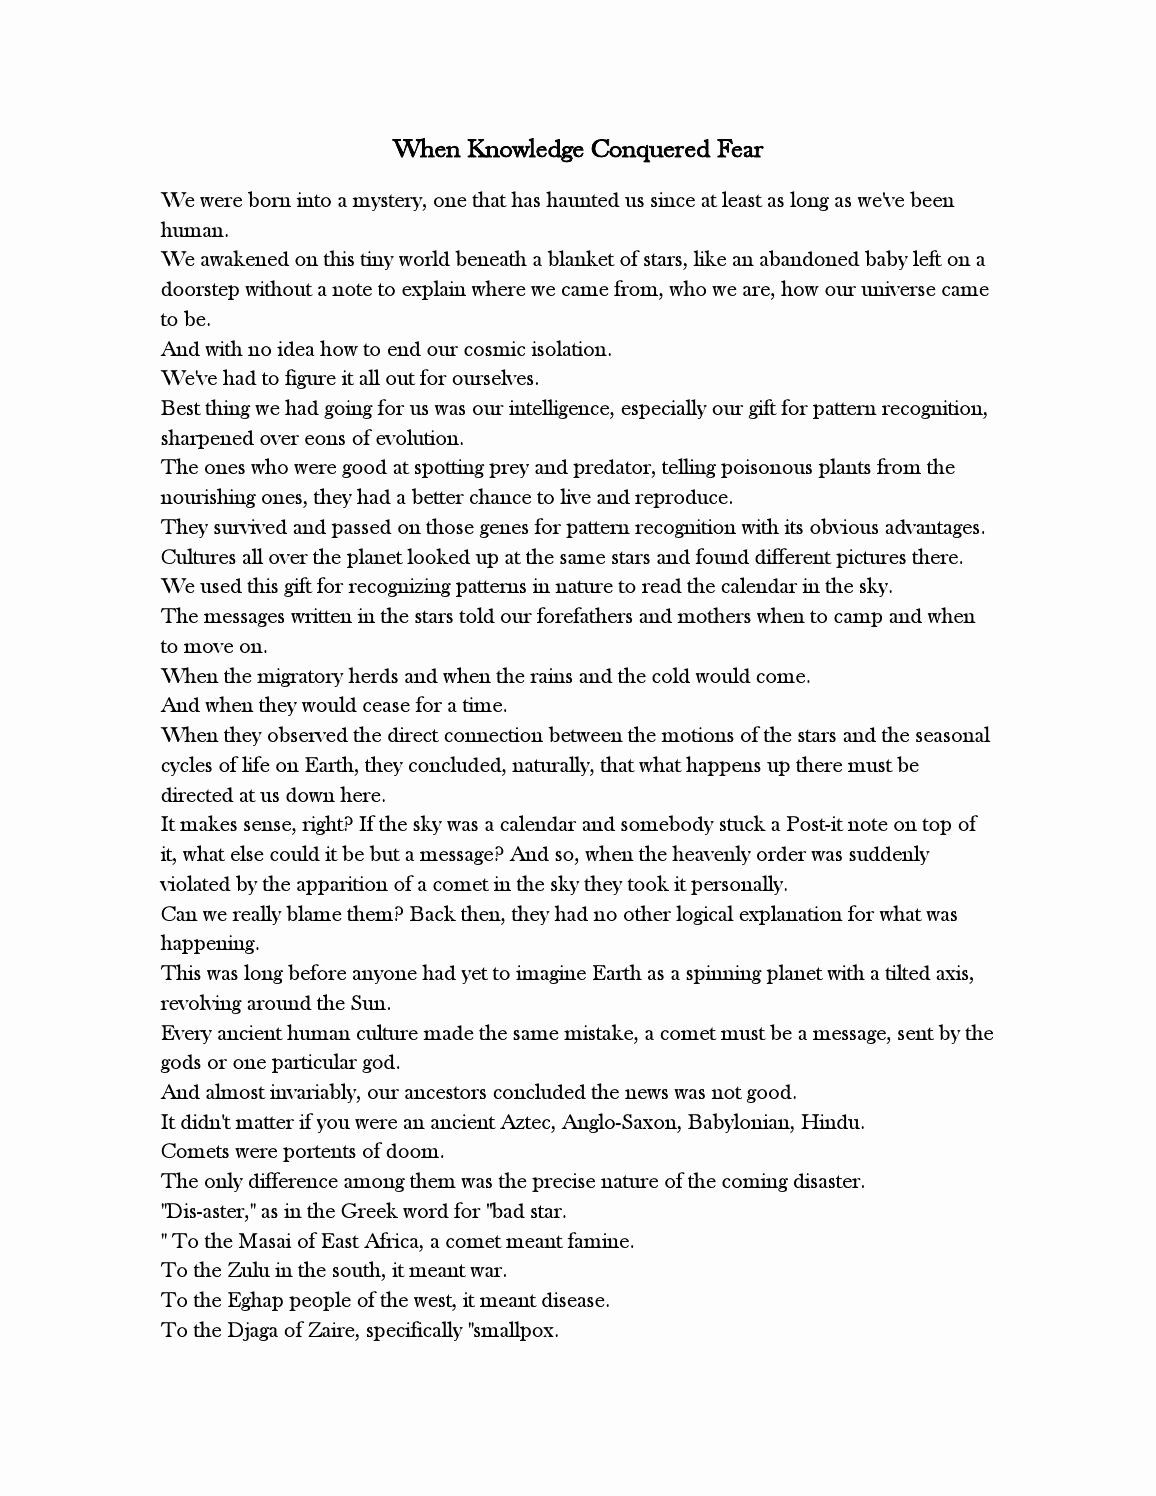 Cosmos Episode 1 Worksheet Answers New Cosmos Episode 2